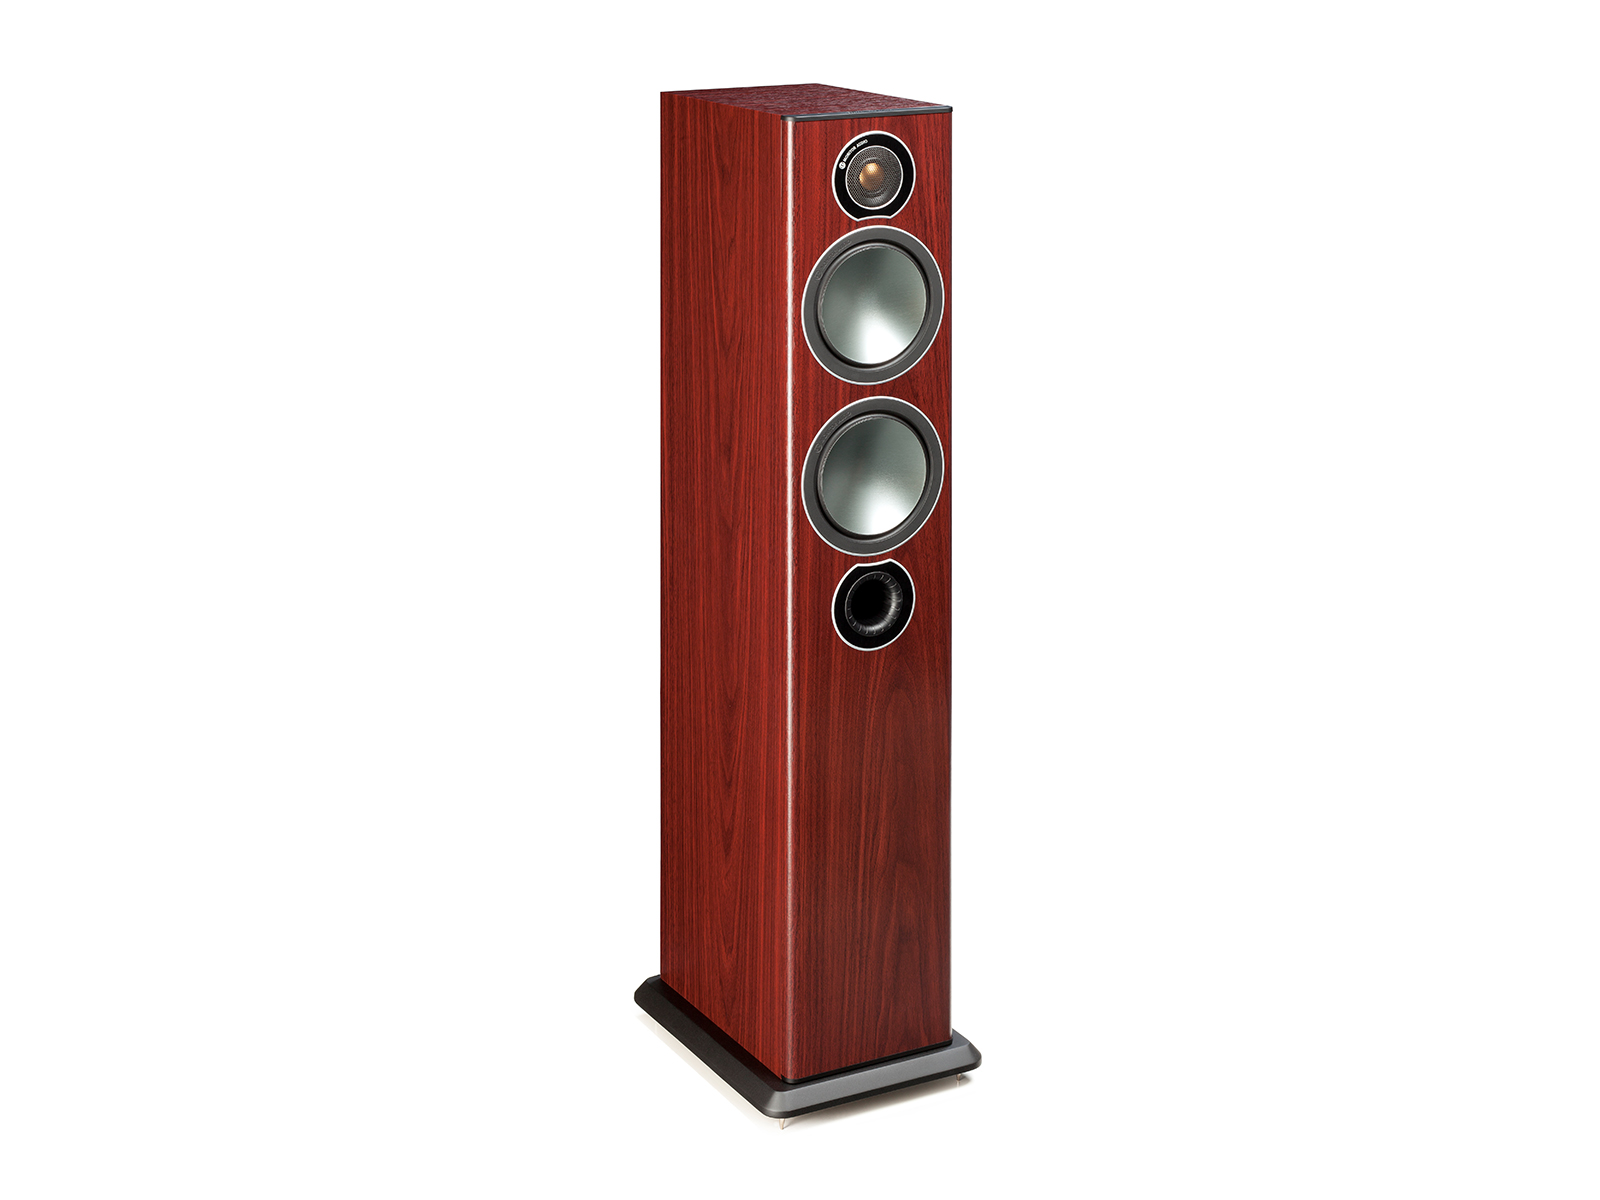 Bronze 5, grille-less floorstanding speakers, with a rosemah vinyl finish.